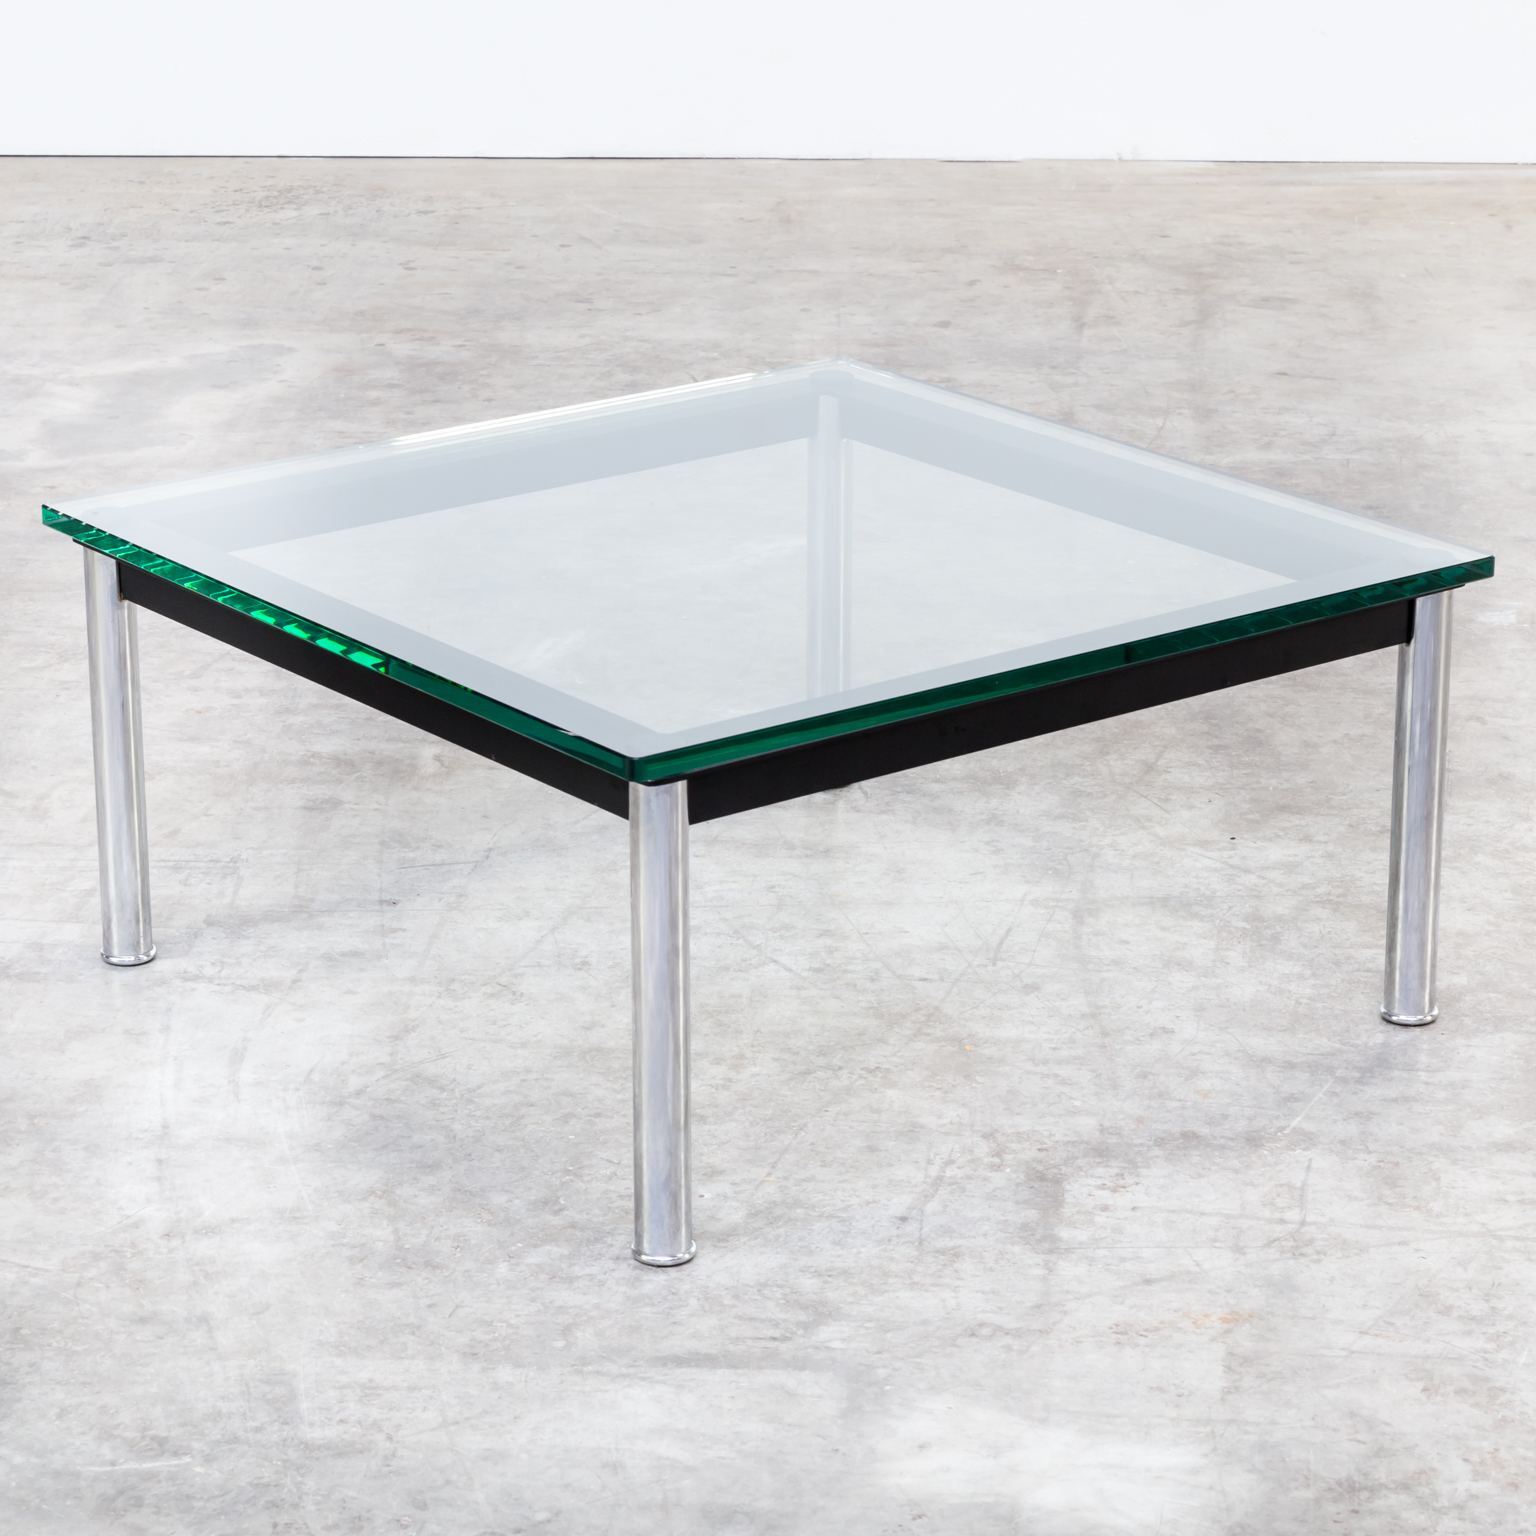 80s le corbusier lc10p, no 3965 coffee table glass for cassina